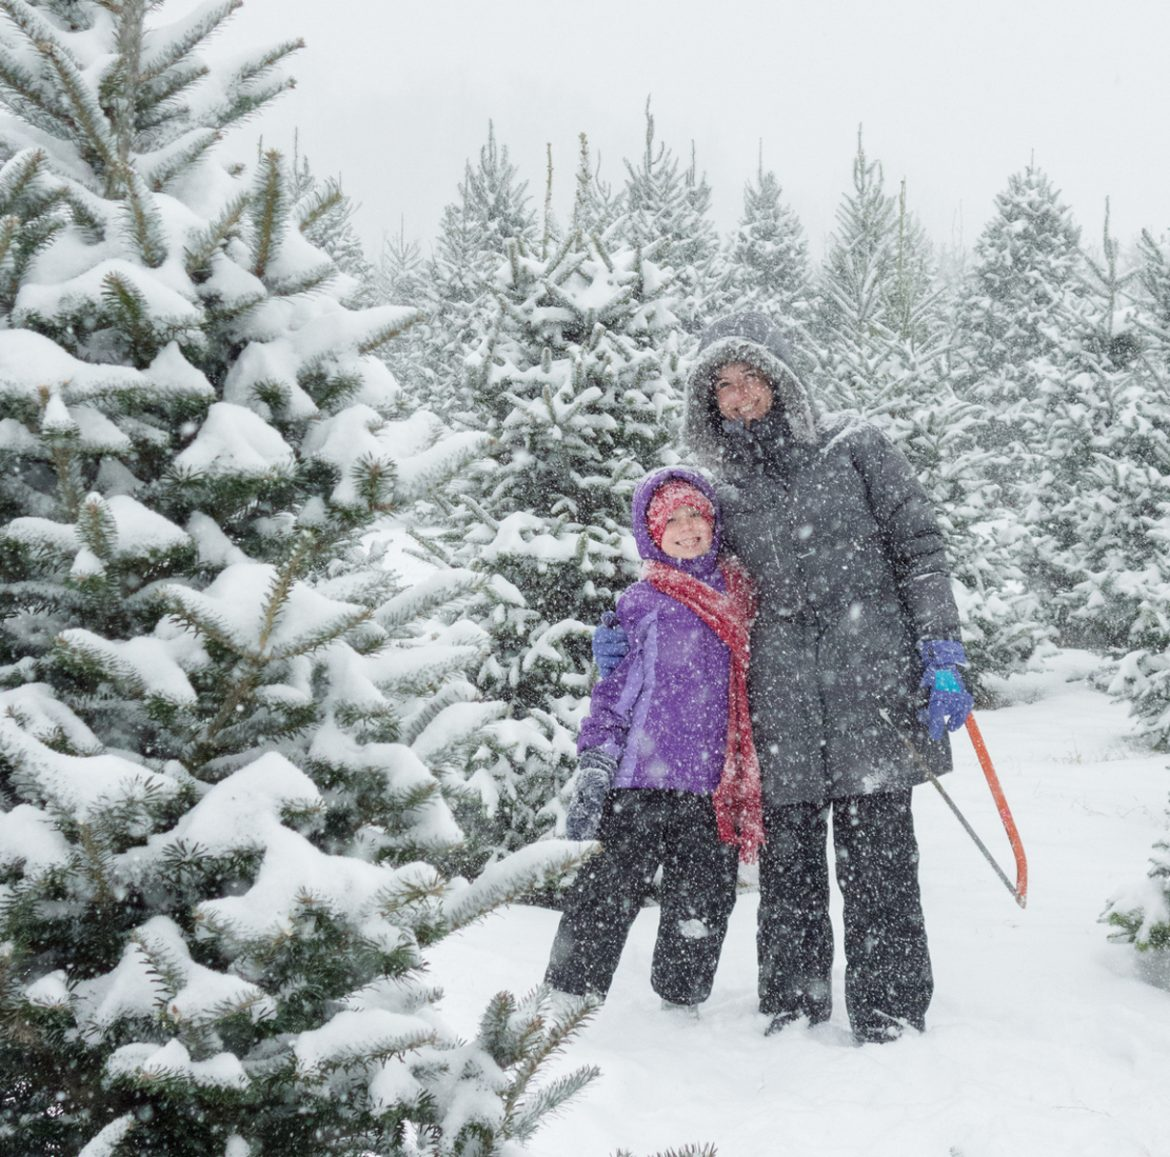 Mother Daughter Portrait at the Christmas Tree Farm in Heavy Fal